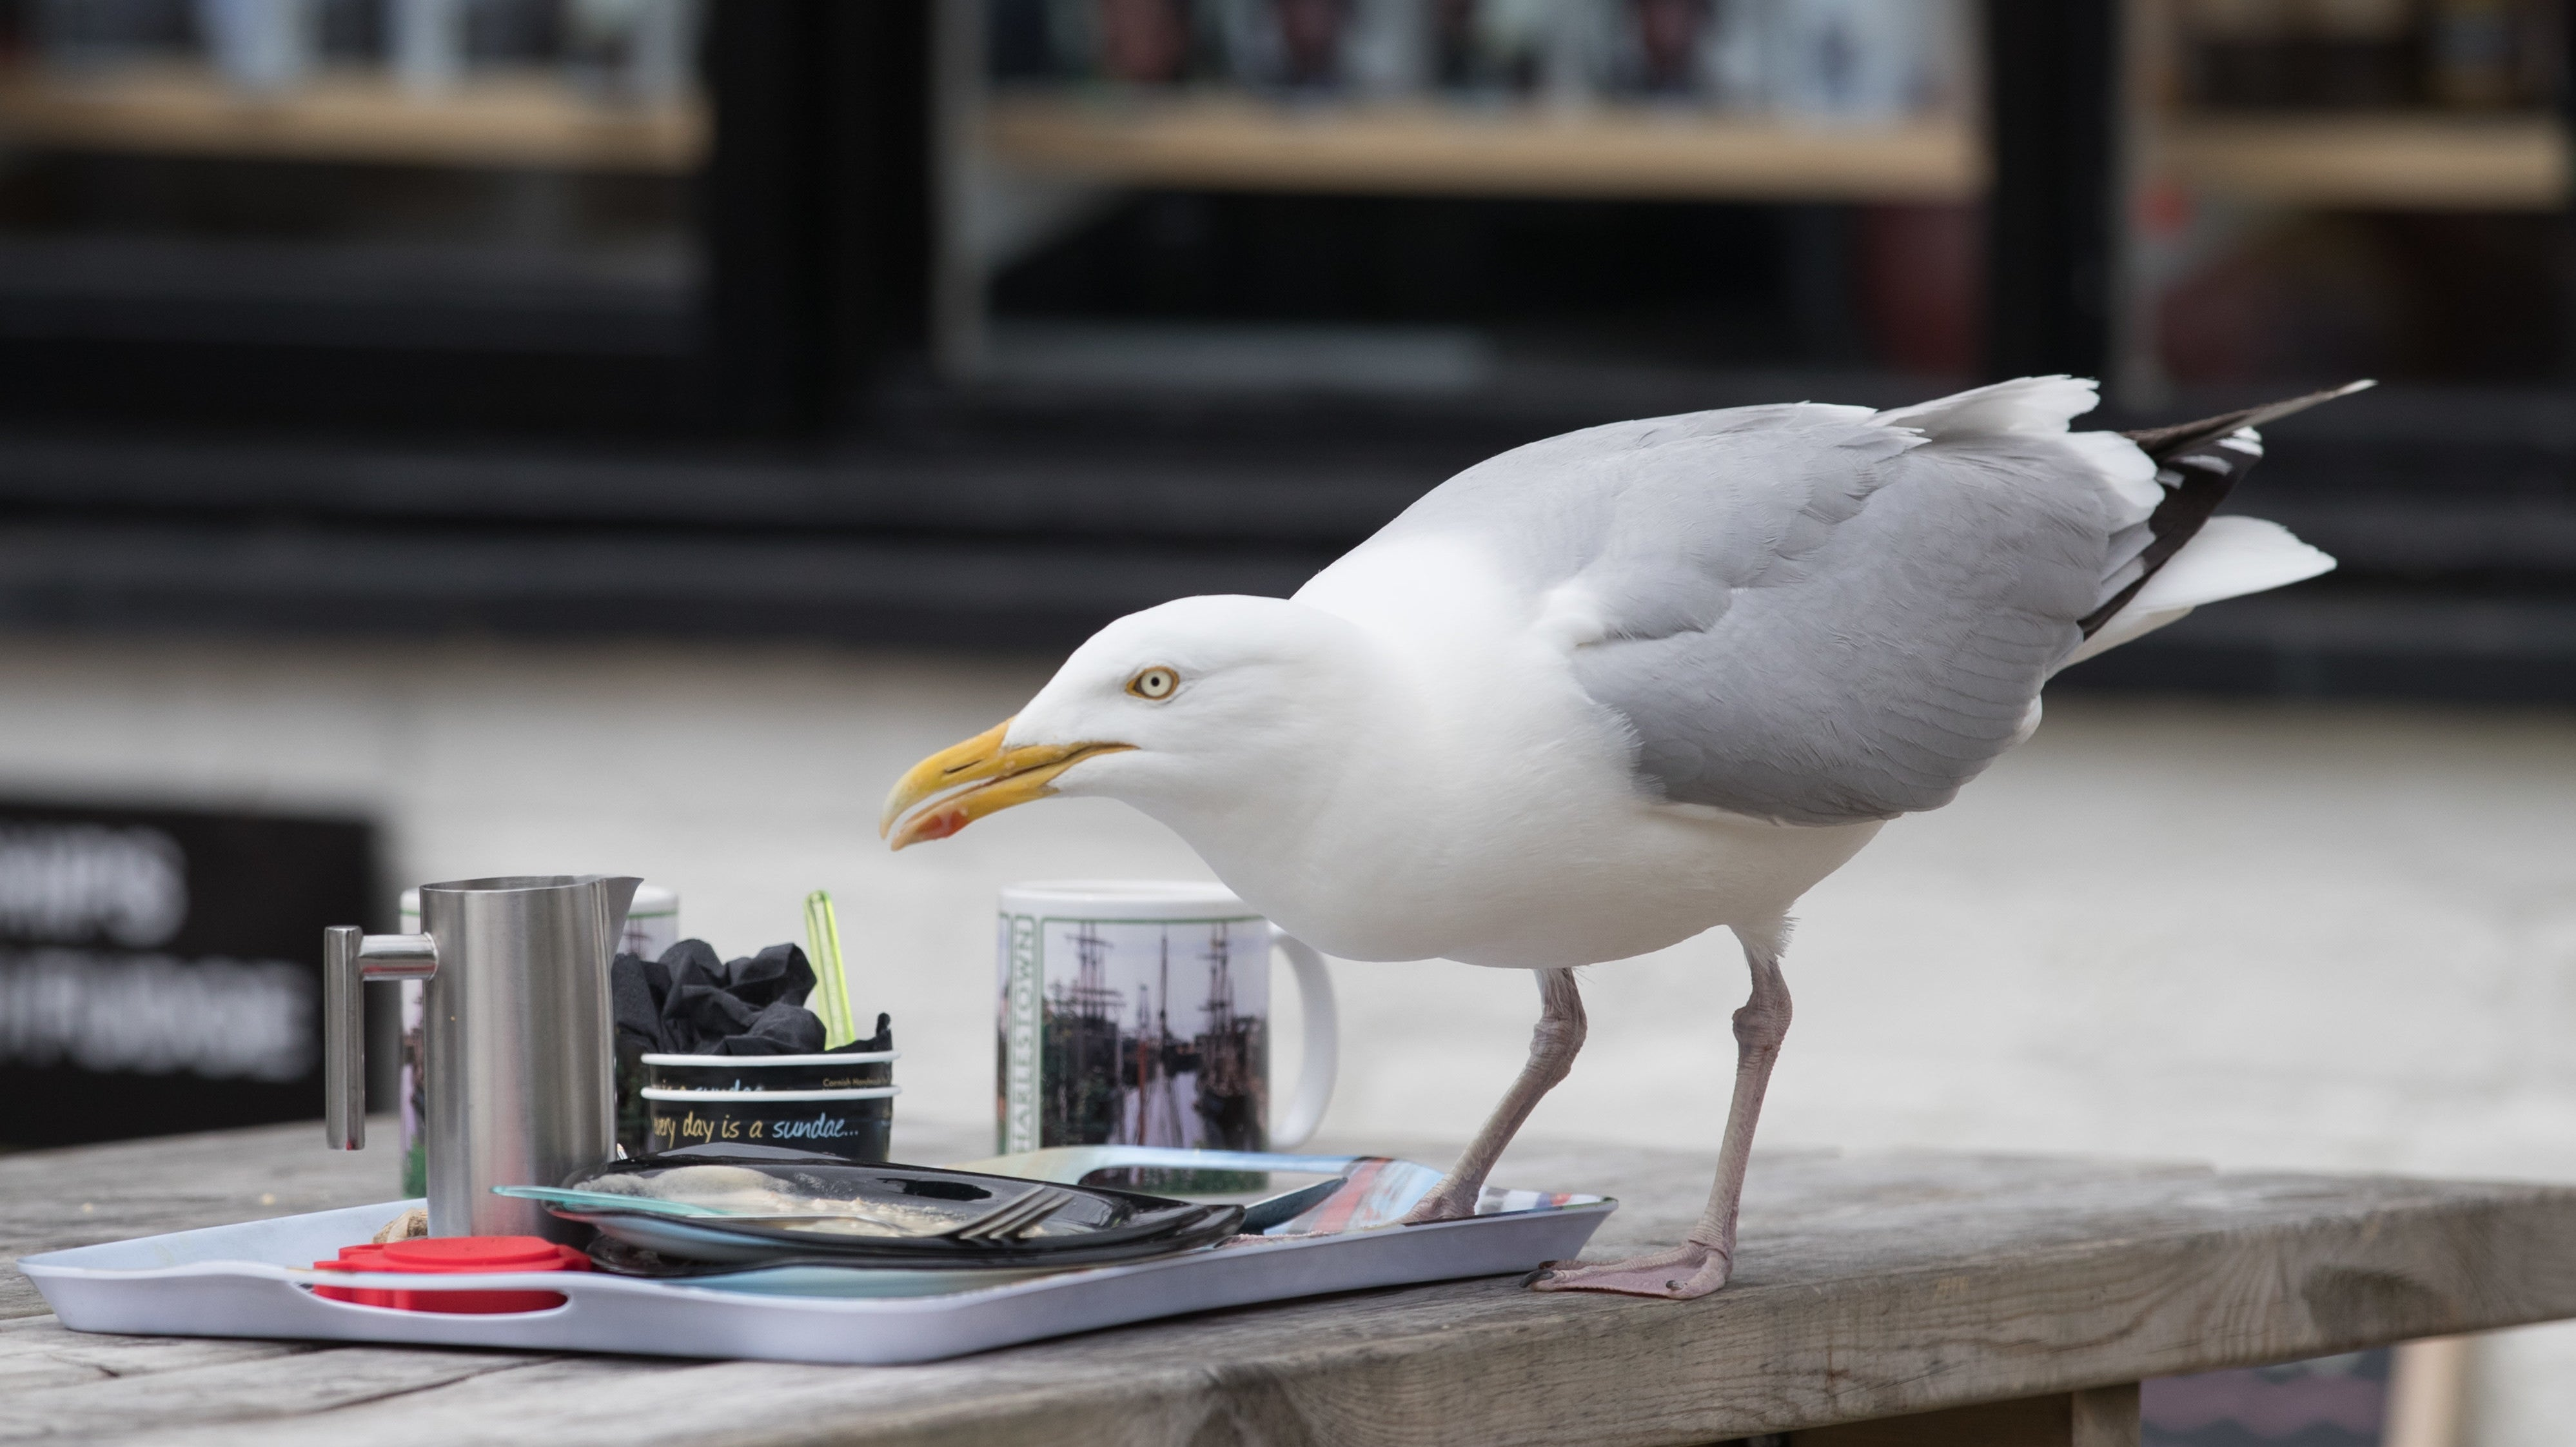 How To Stop Seagulls From Stealing Your Food Or At Least Make Them Feel Guilty About It